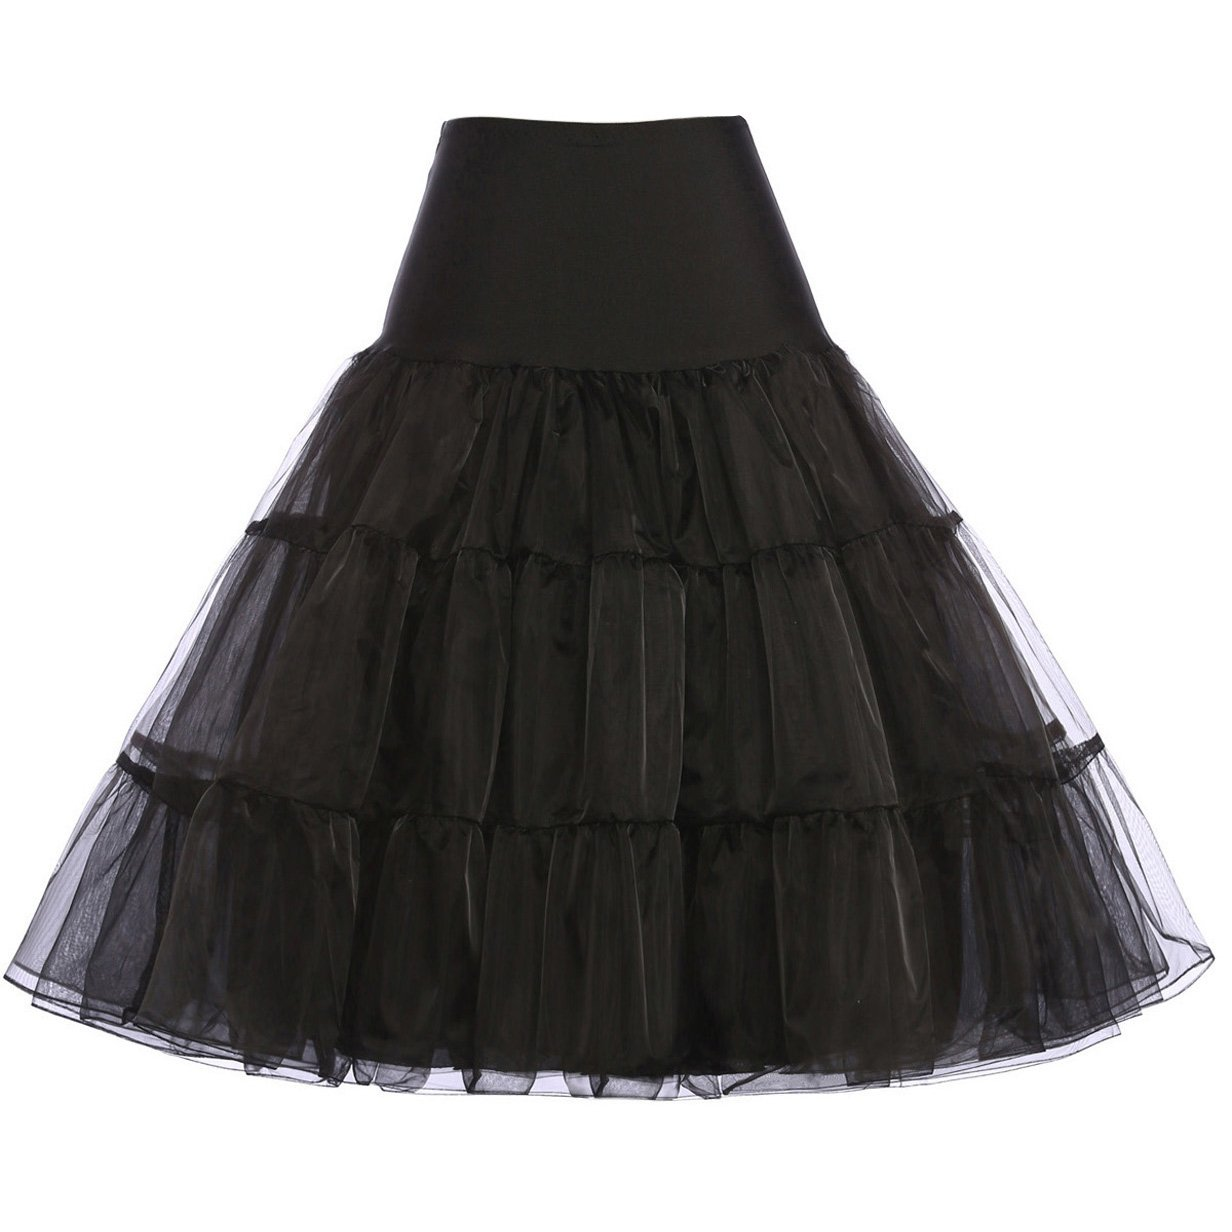 Ladies 50s Petticoat Rockabilly Tulle Skirt Under Half Slip XS03 XL: Amazon.co.uk: Clothing